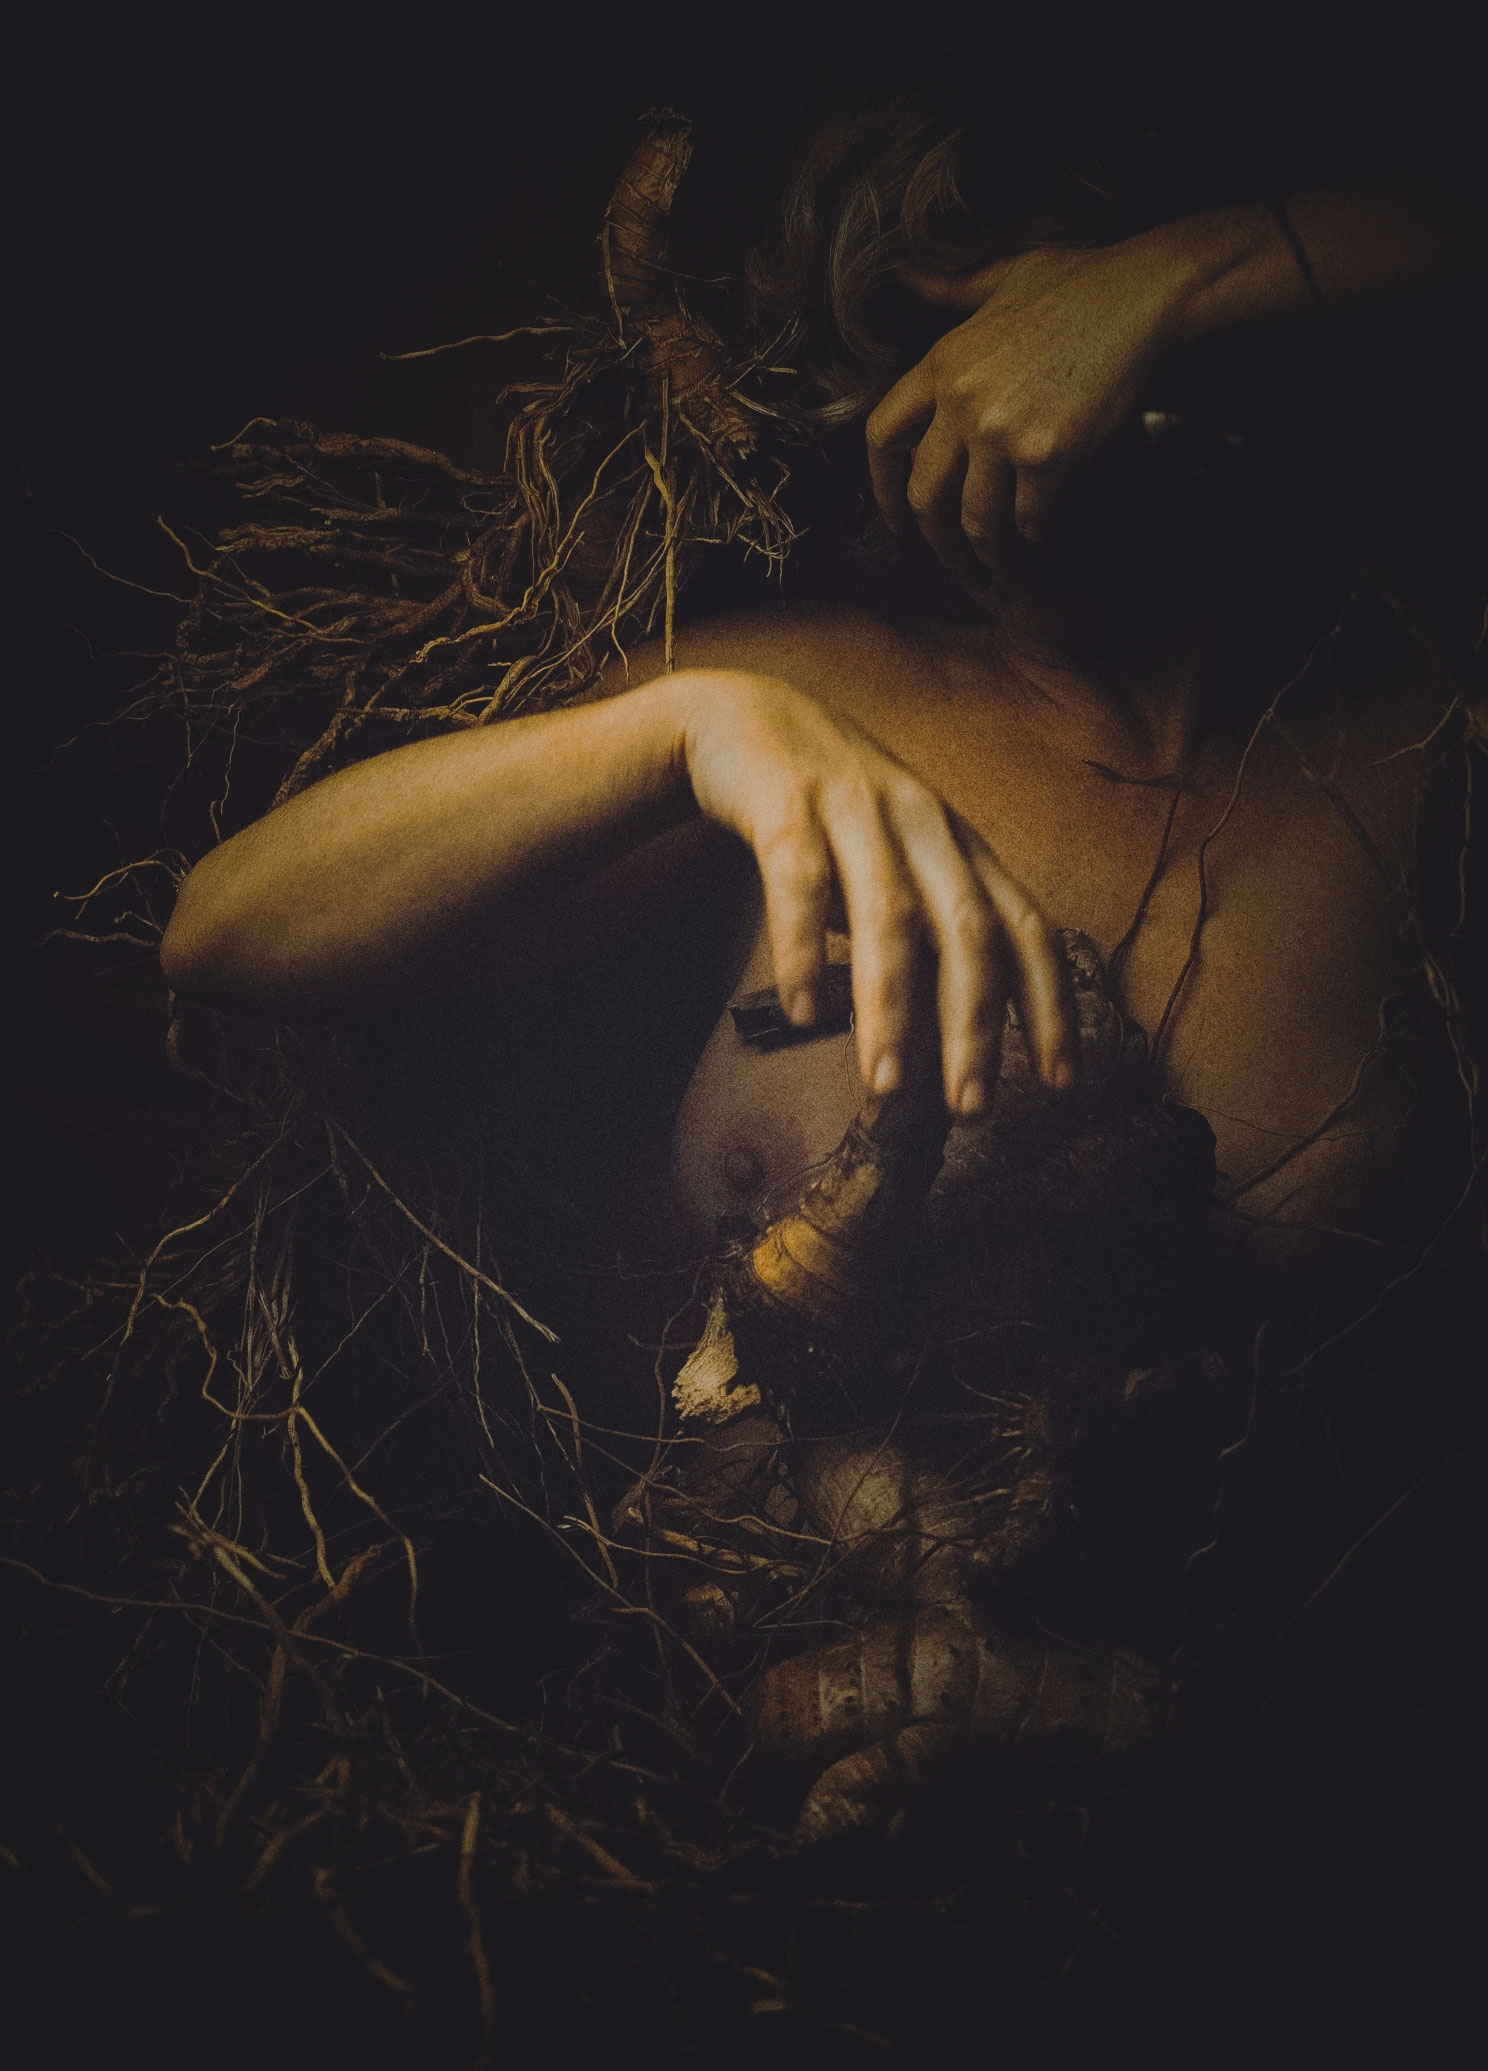 roots - darkness, root, palms, country - natxodiego | ello